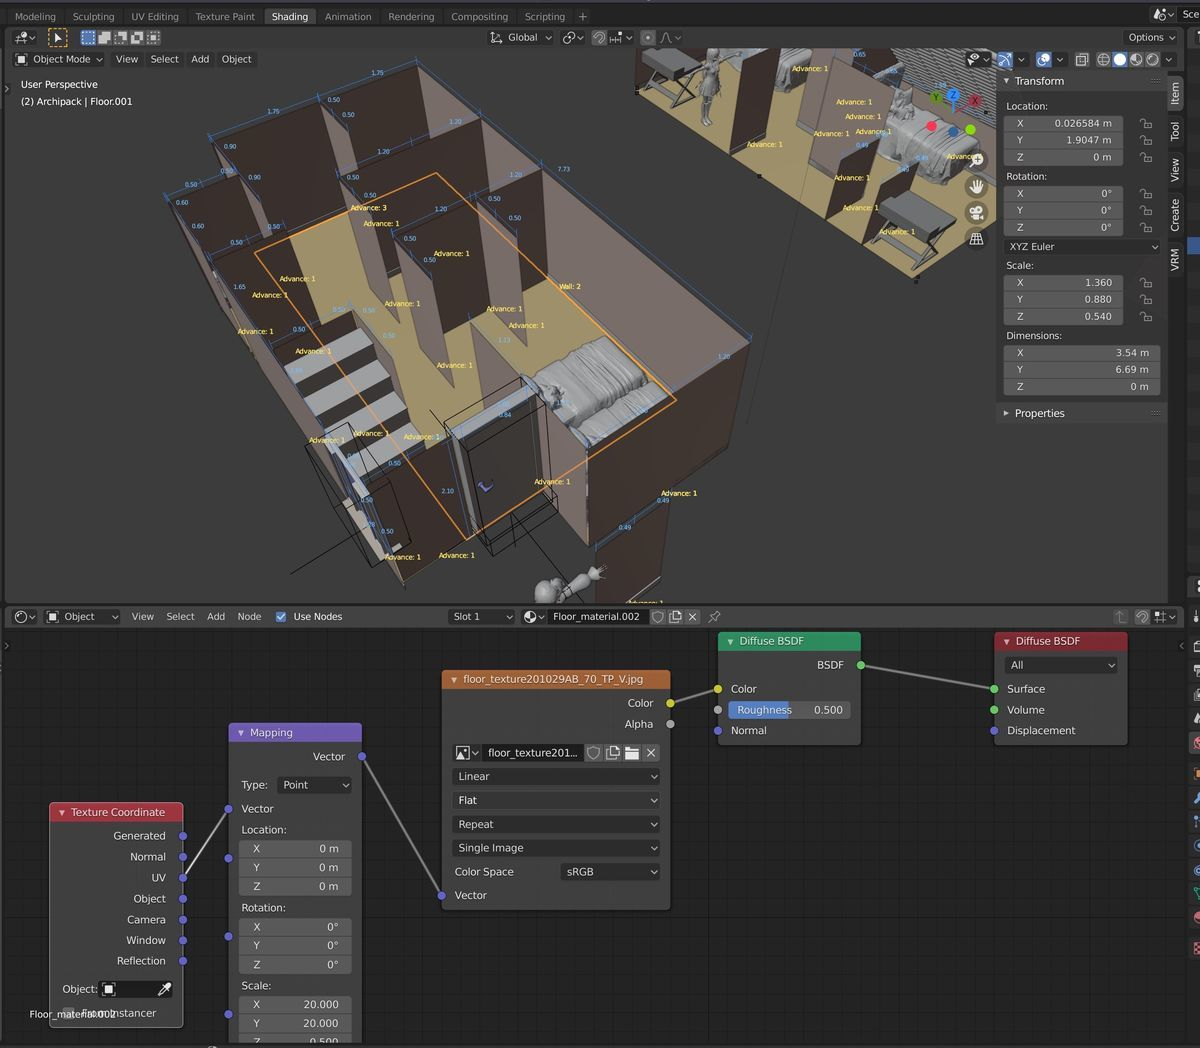 How to open Shading editor on Blender 2.8